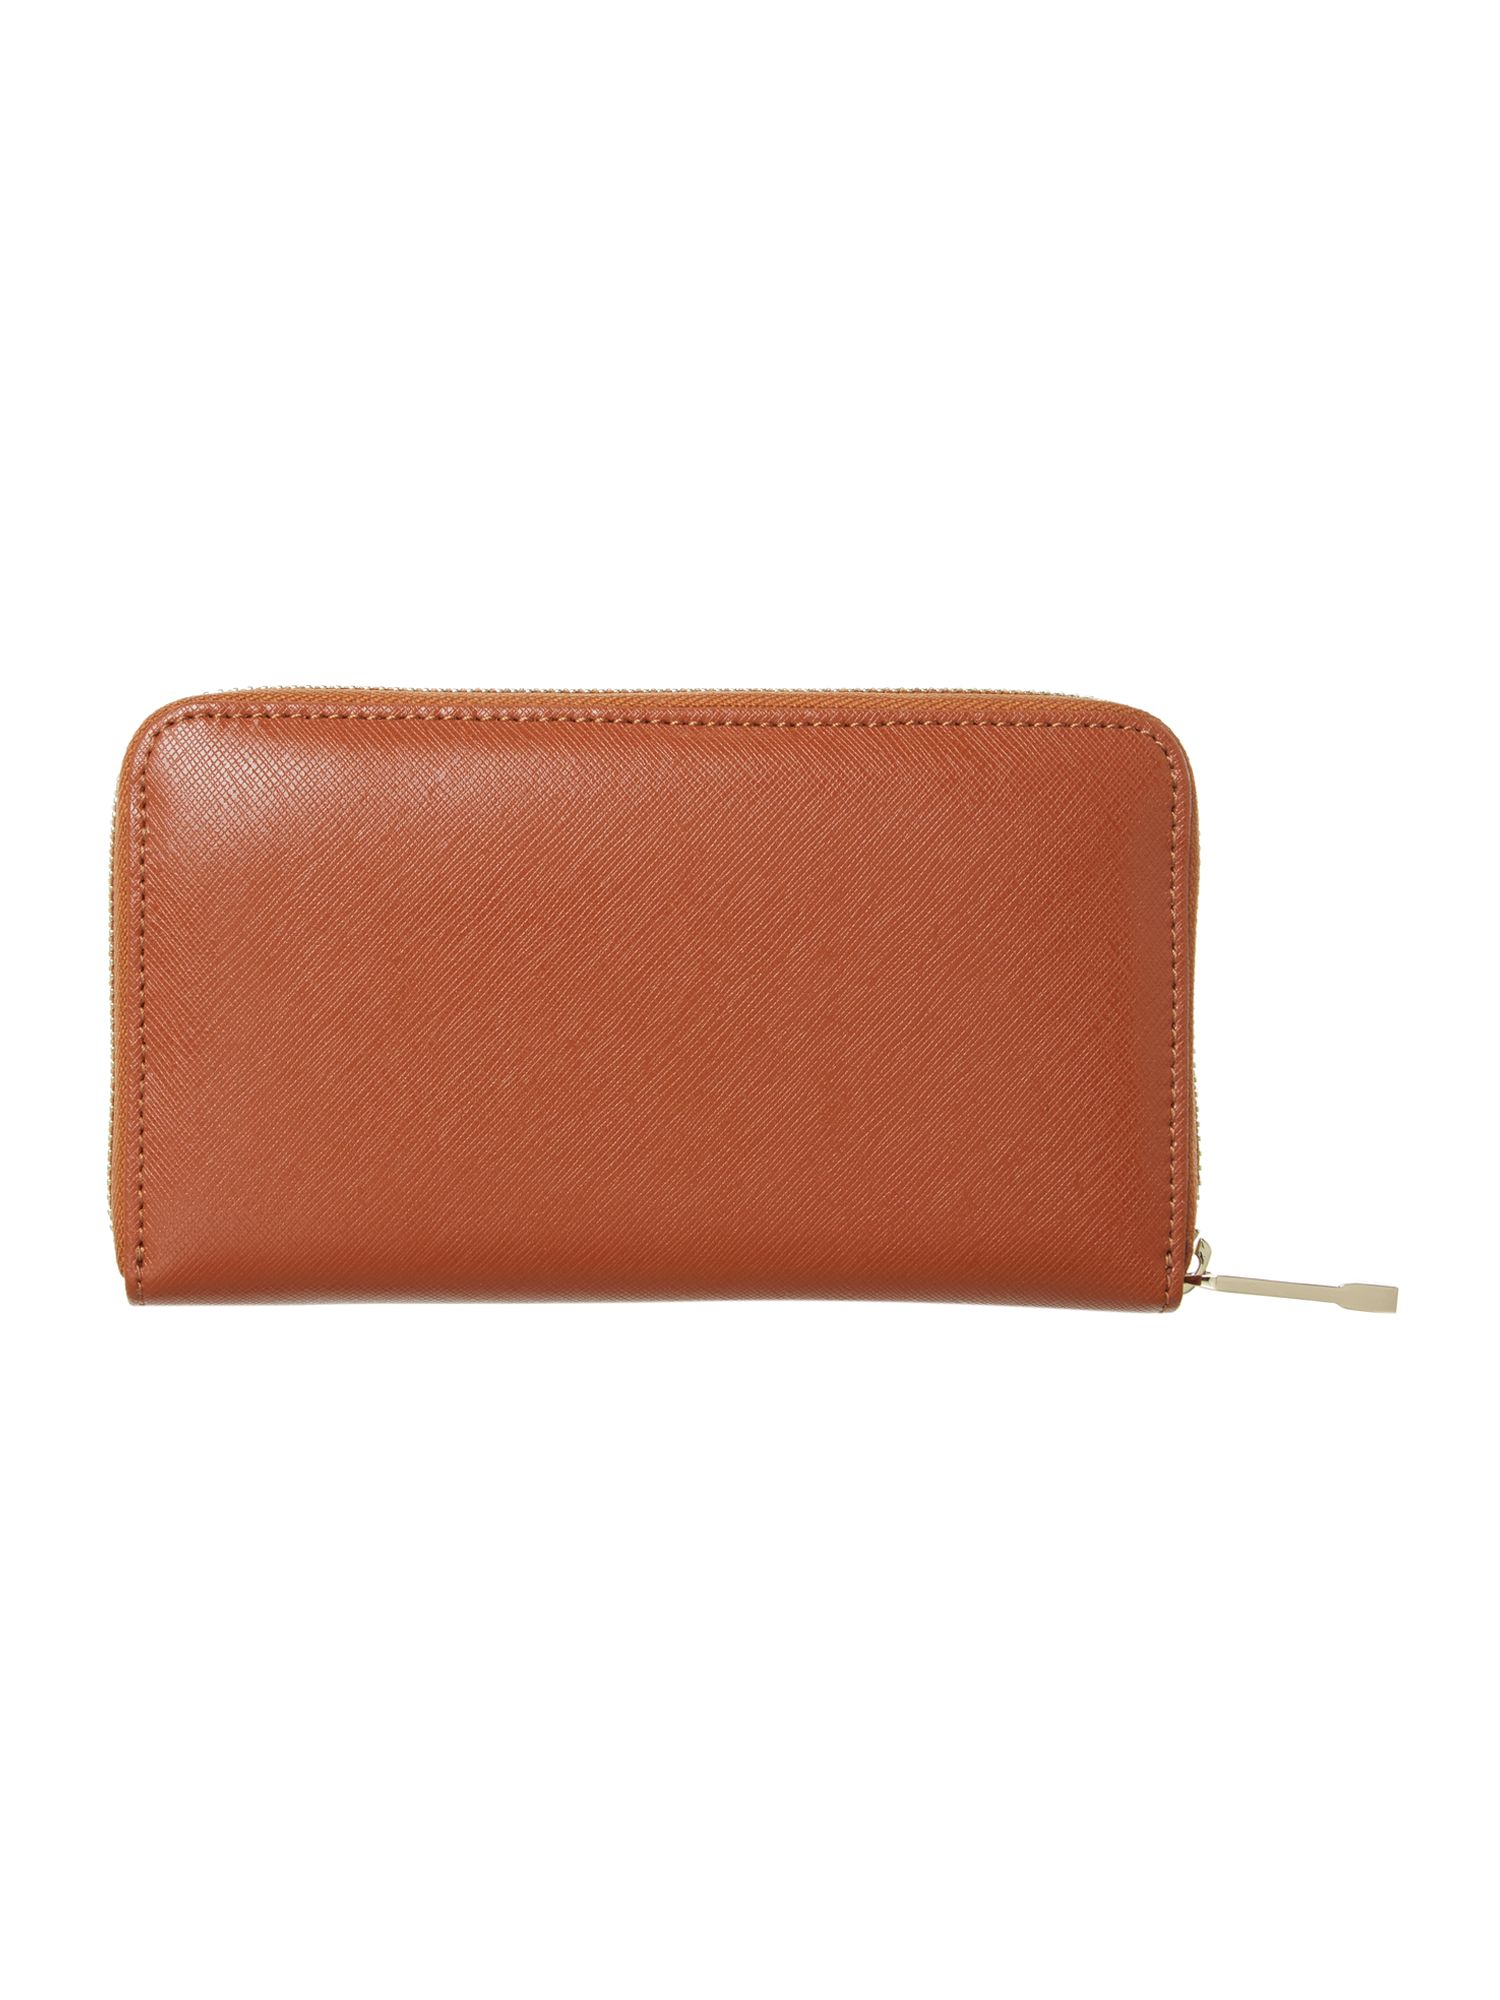 Tan large zip around purse